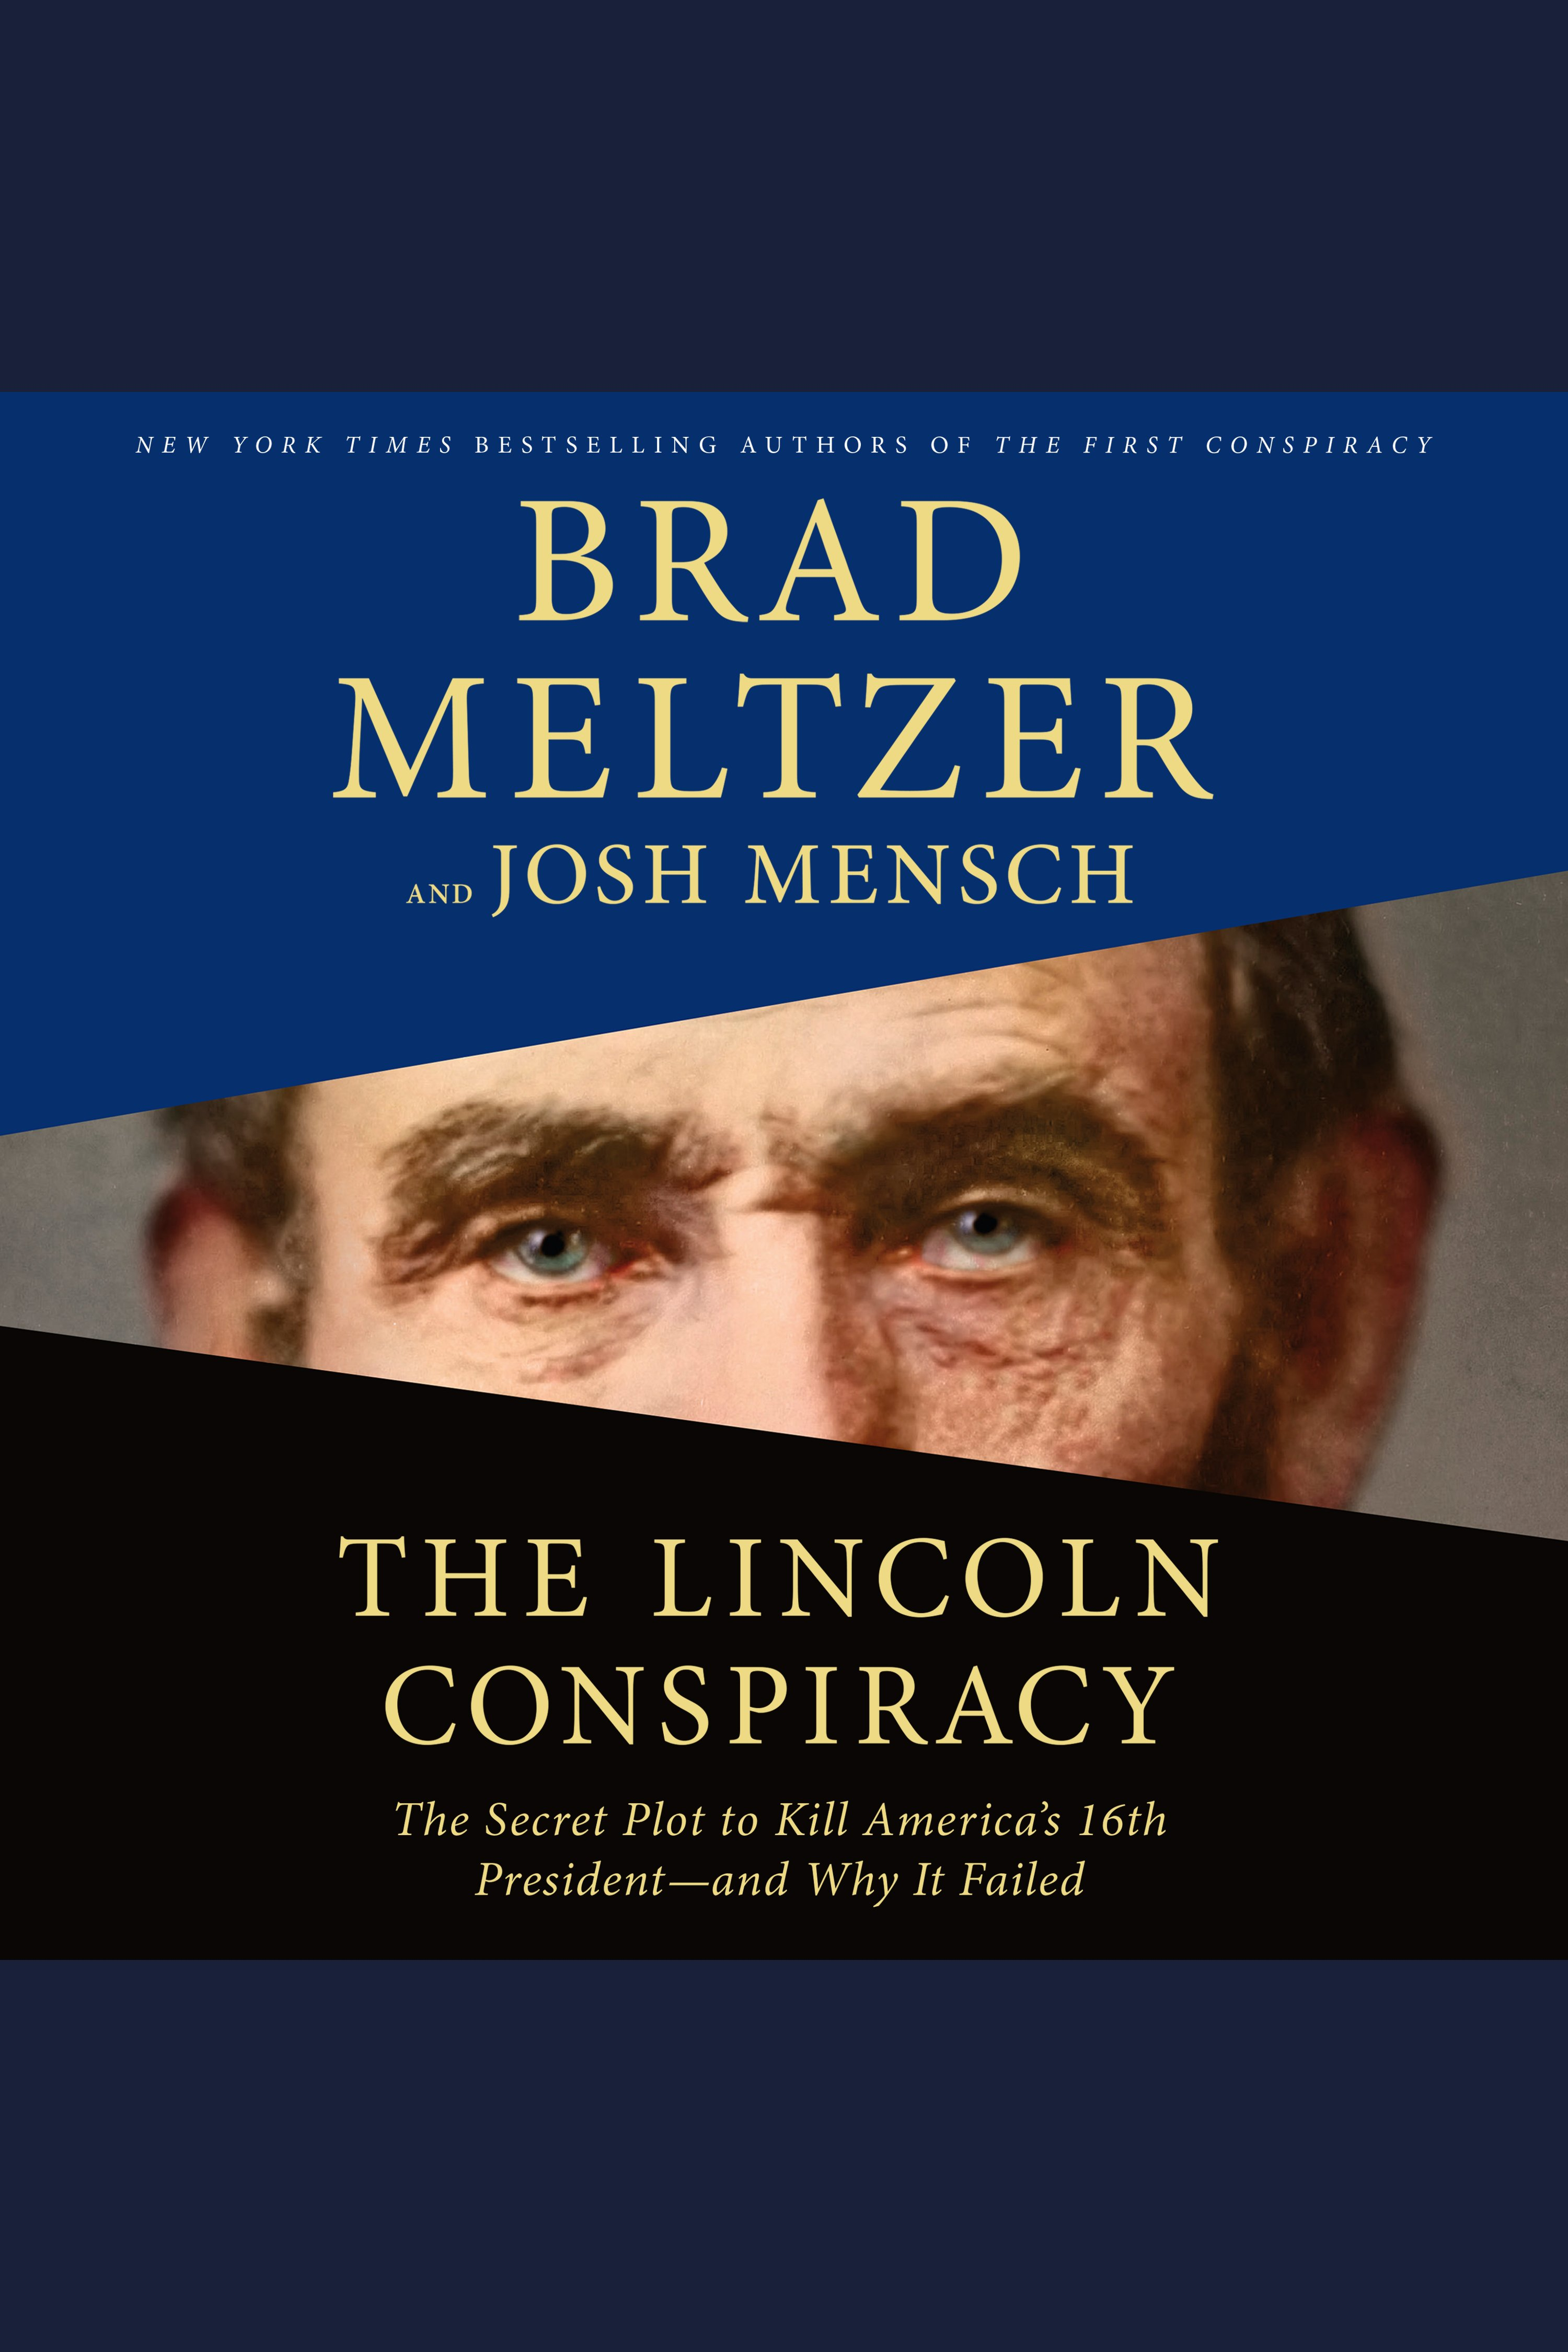 Lincoln Conspiracy, The The Secret Plot to Kill America's 16th President--and Why It Failed